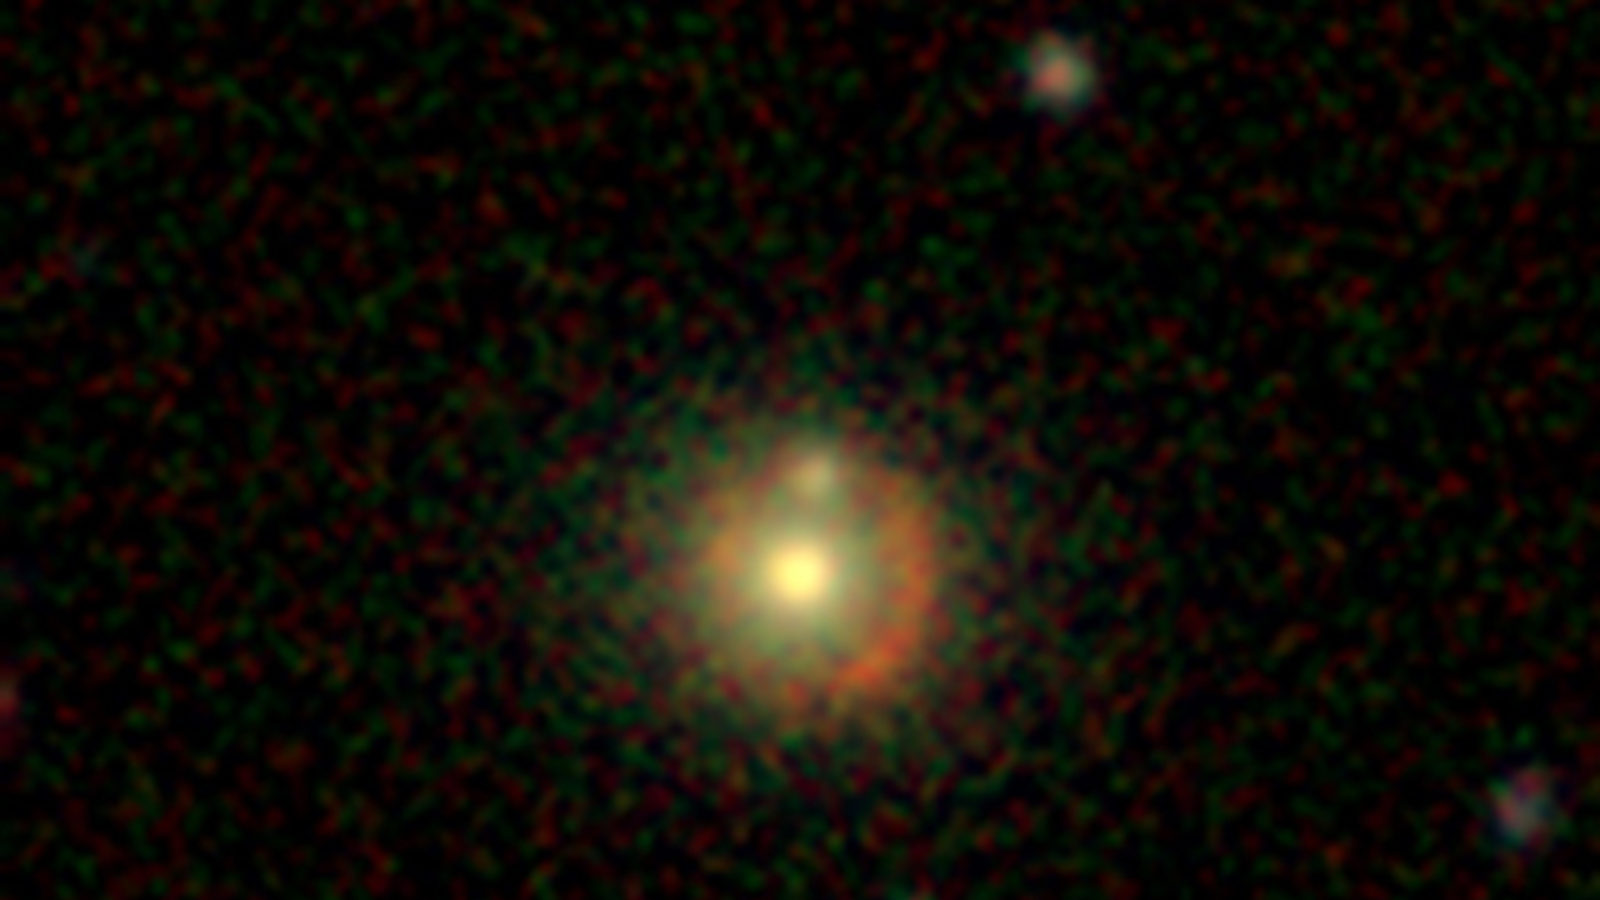 This lensed galaxy was discovered by citizen scientists earlier this week through the Space Warps website